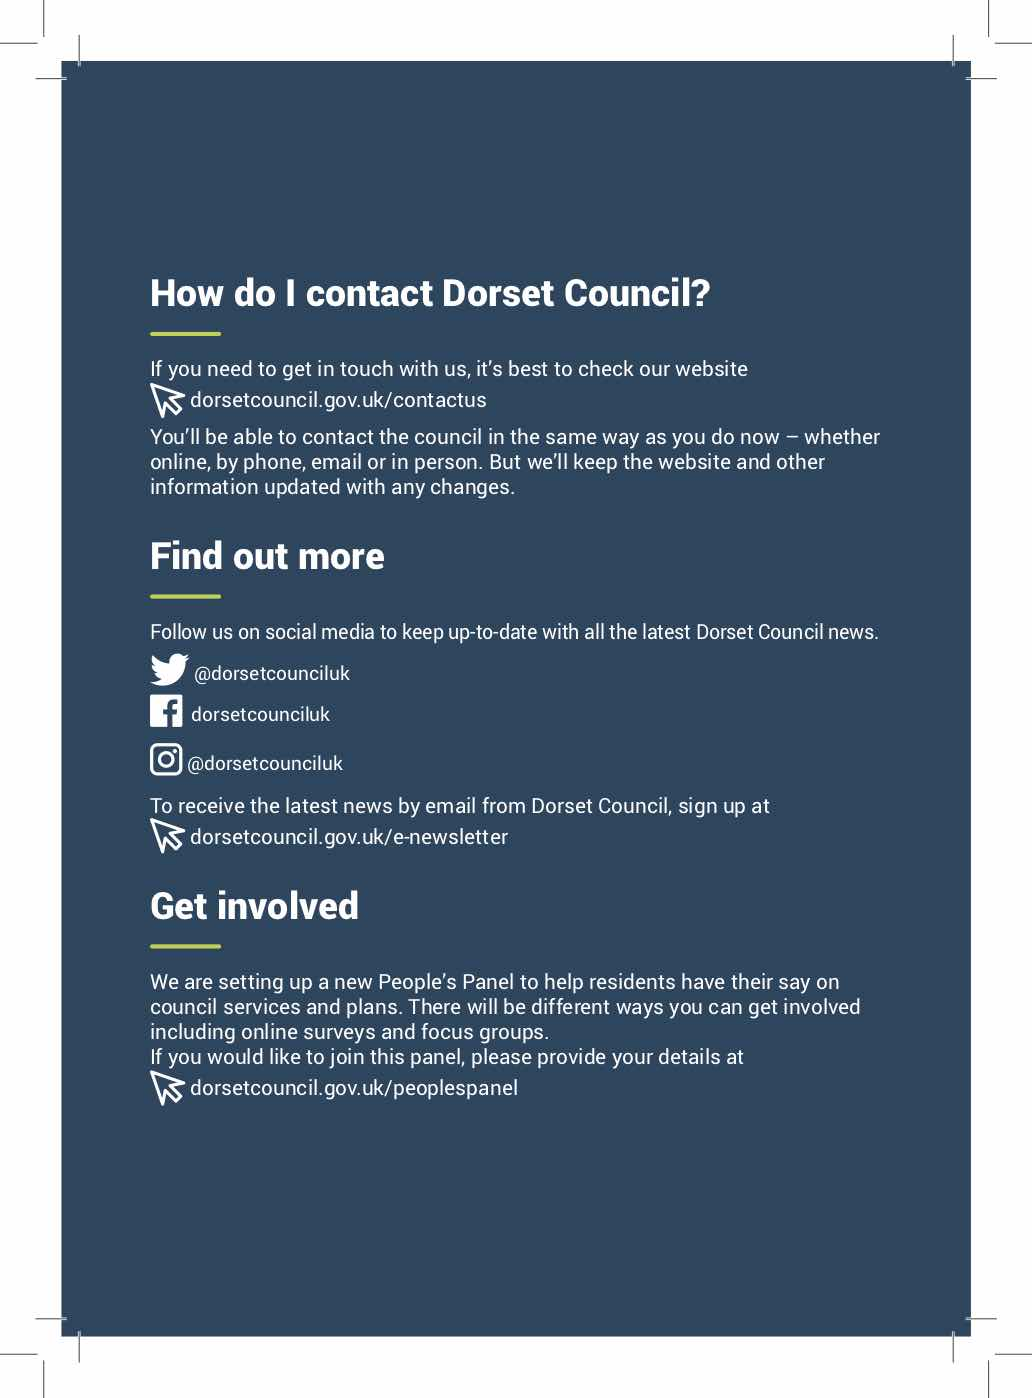 Changes to Dorset Councils from 2019